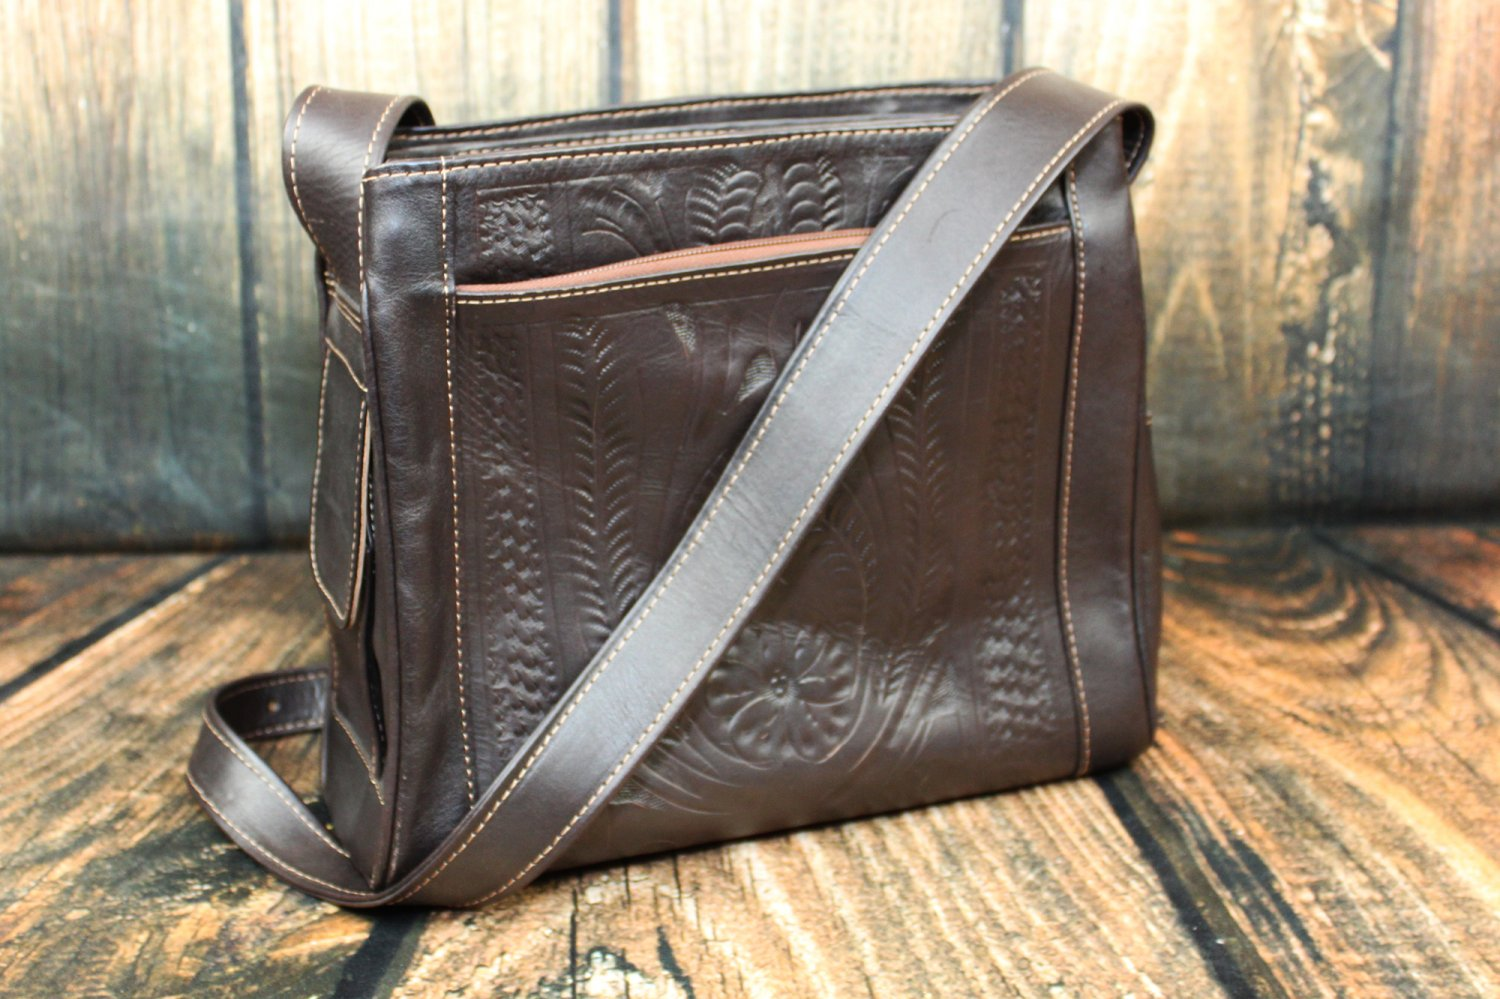 Ropin West Brown Tooled Leather Purse - RW978